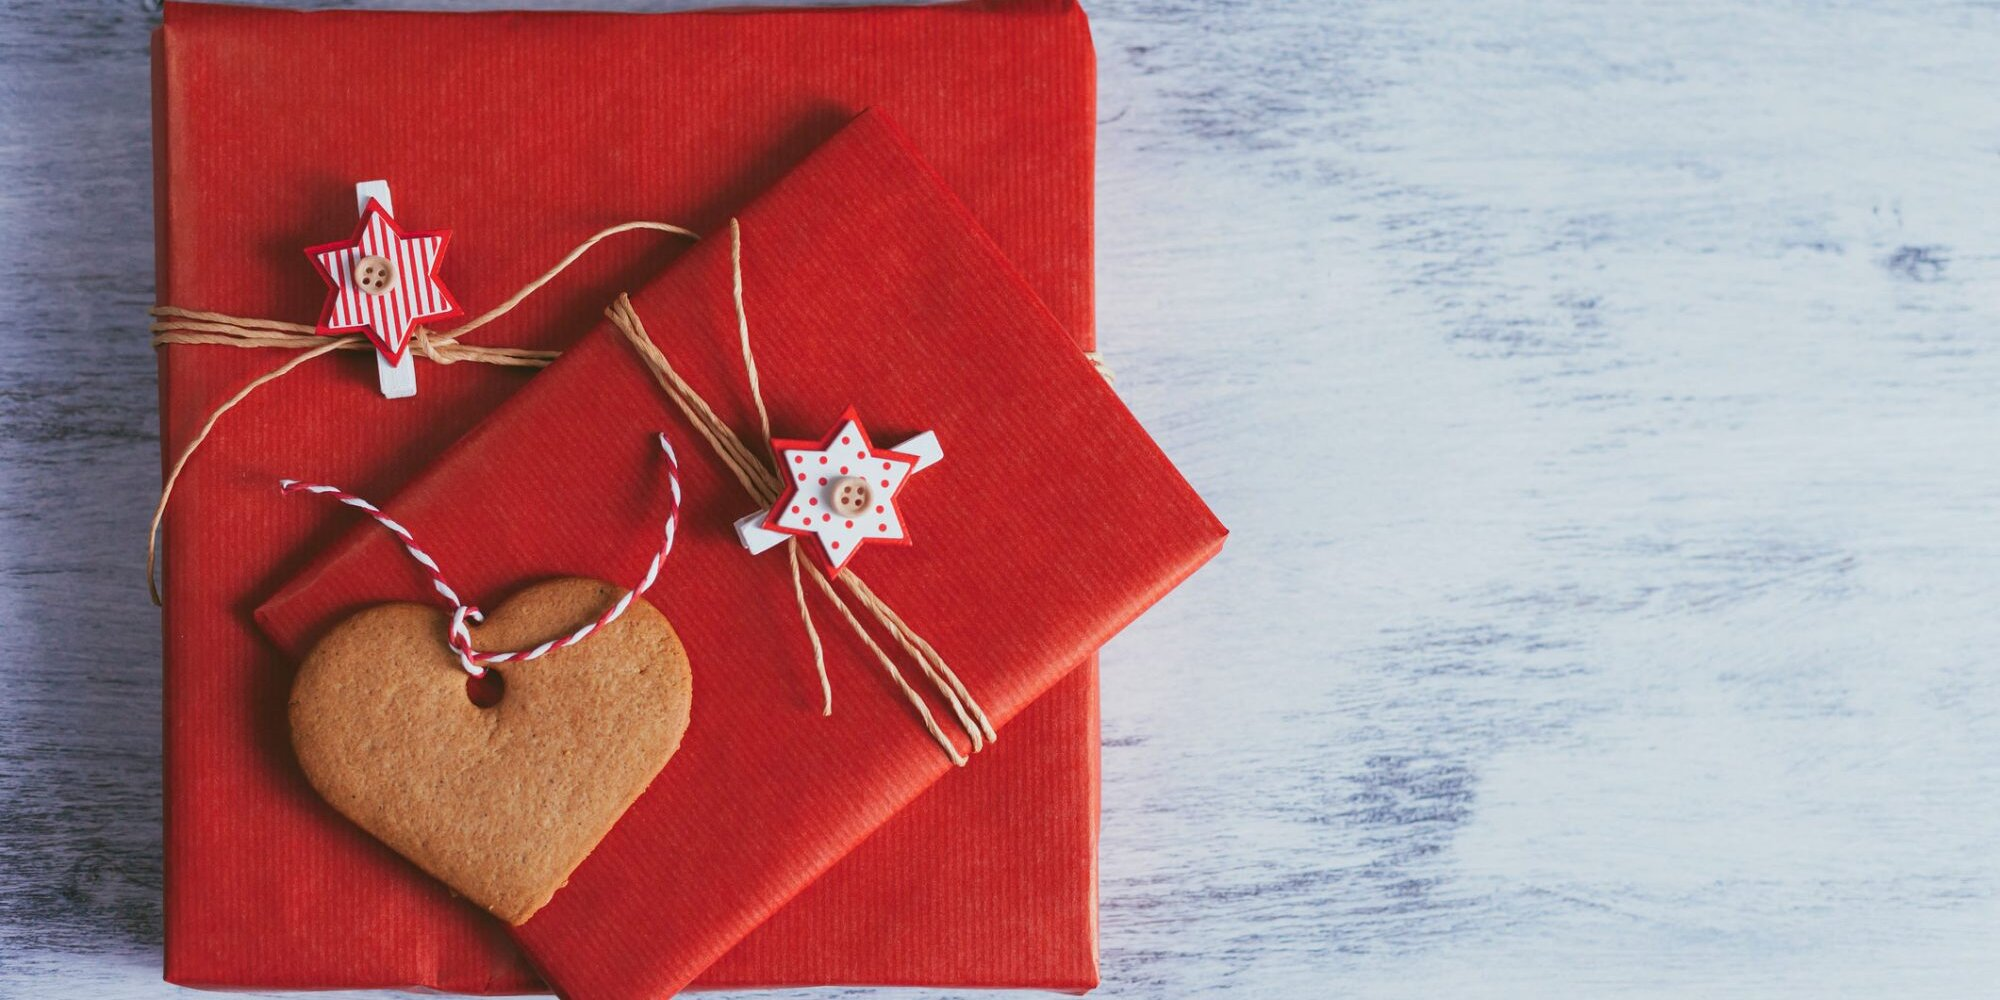 Regional Food Gifts Perfect for Ordering This Christmas